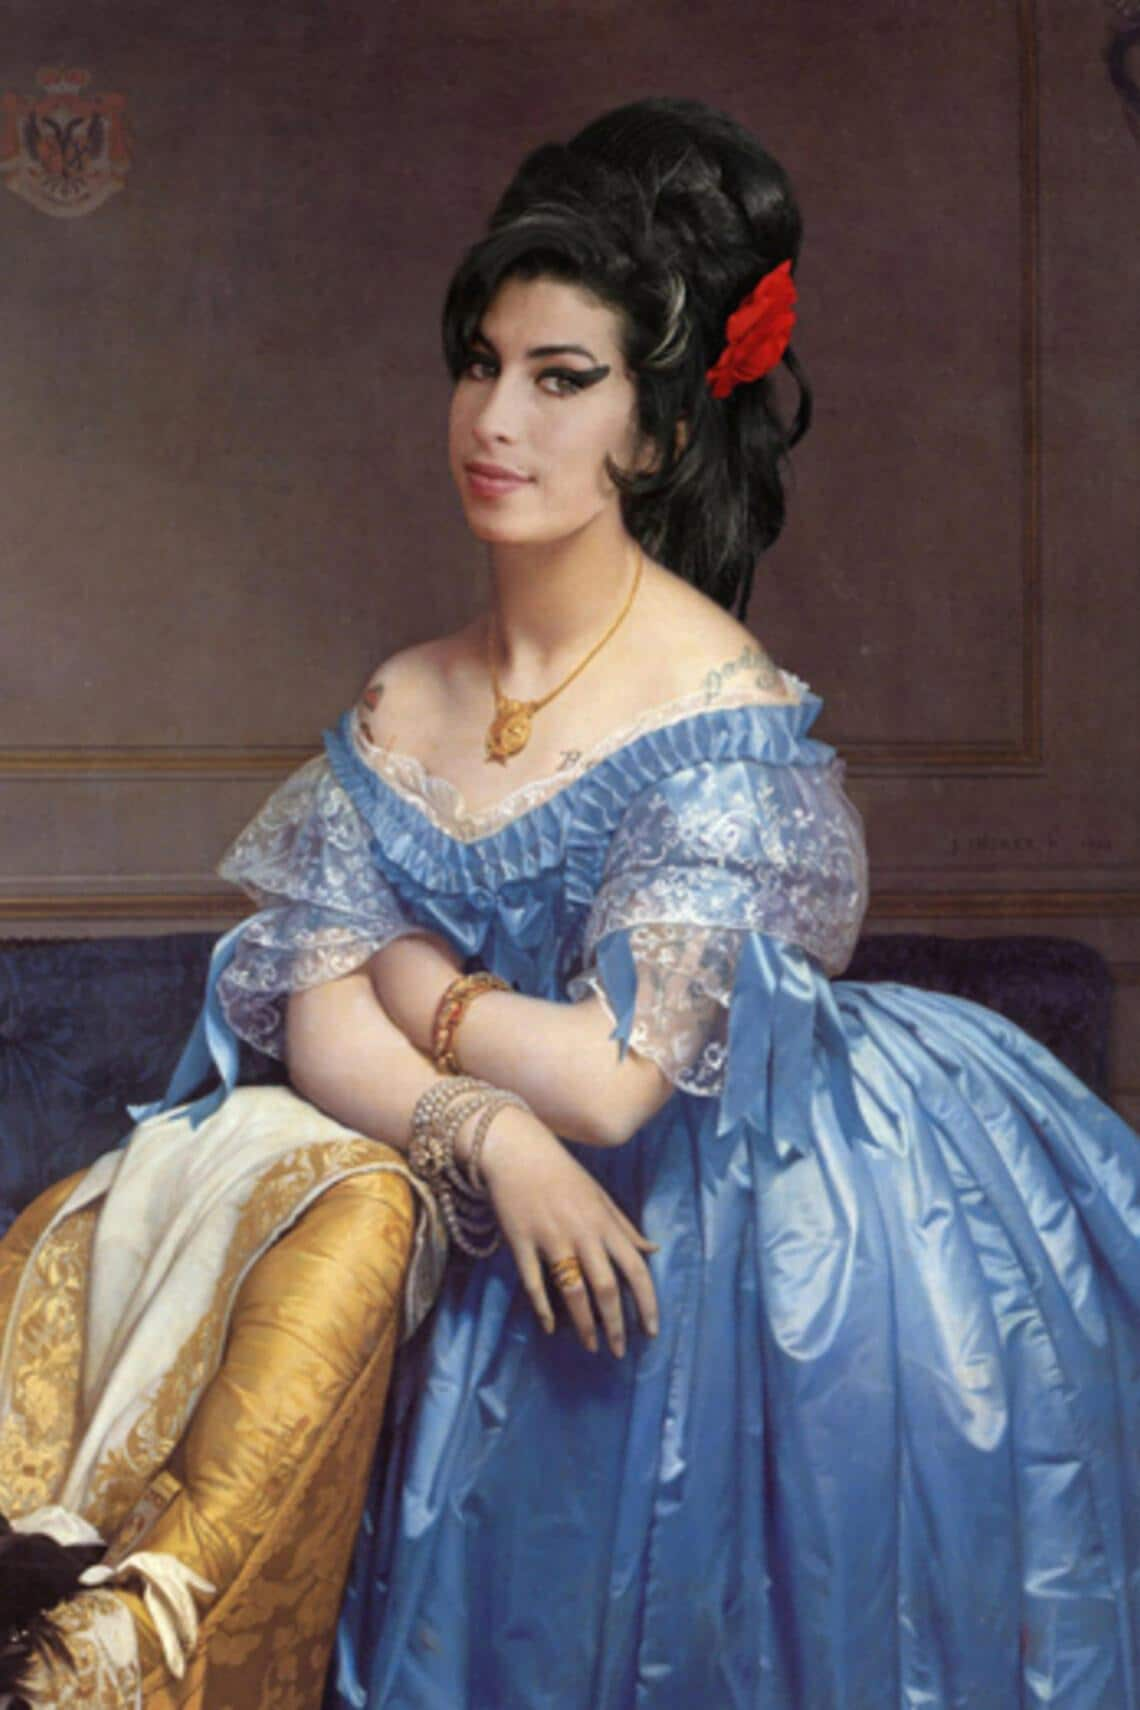 Worth1000.com Renaissance Amy Winehouse